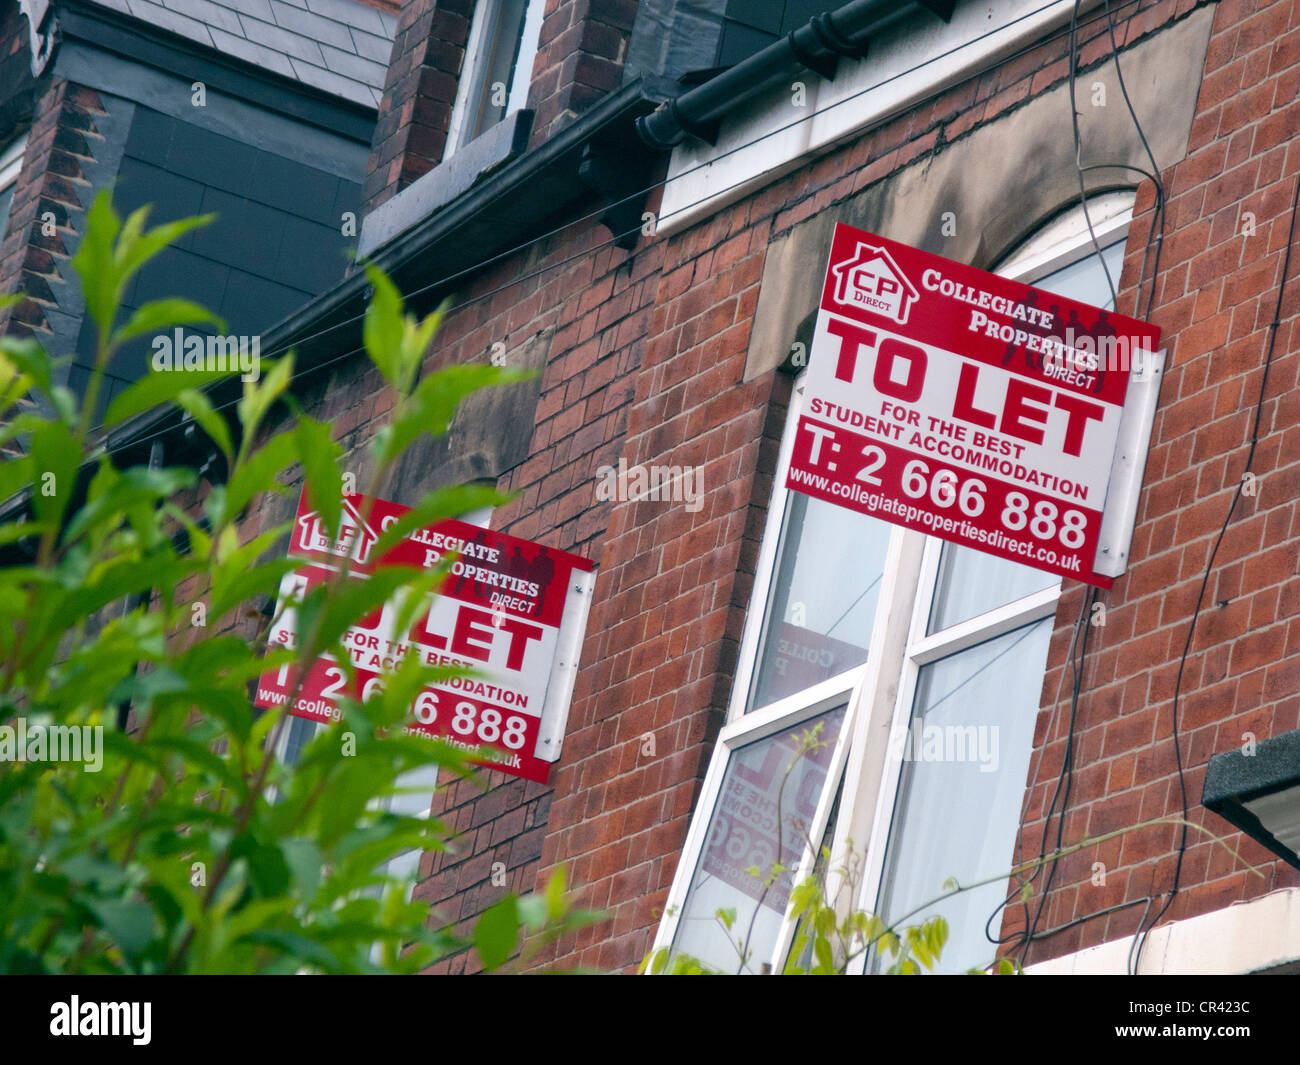 Student Accommodation to let - Stock Image